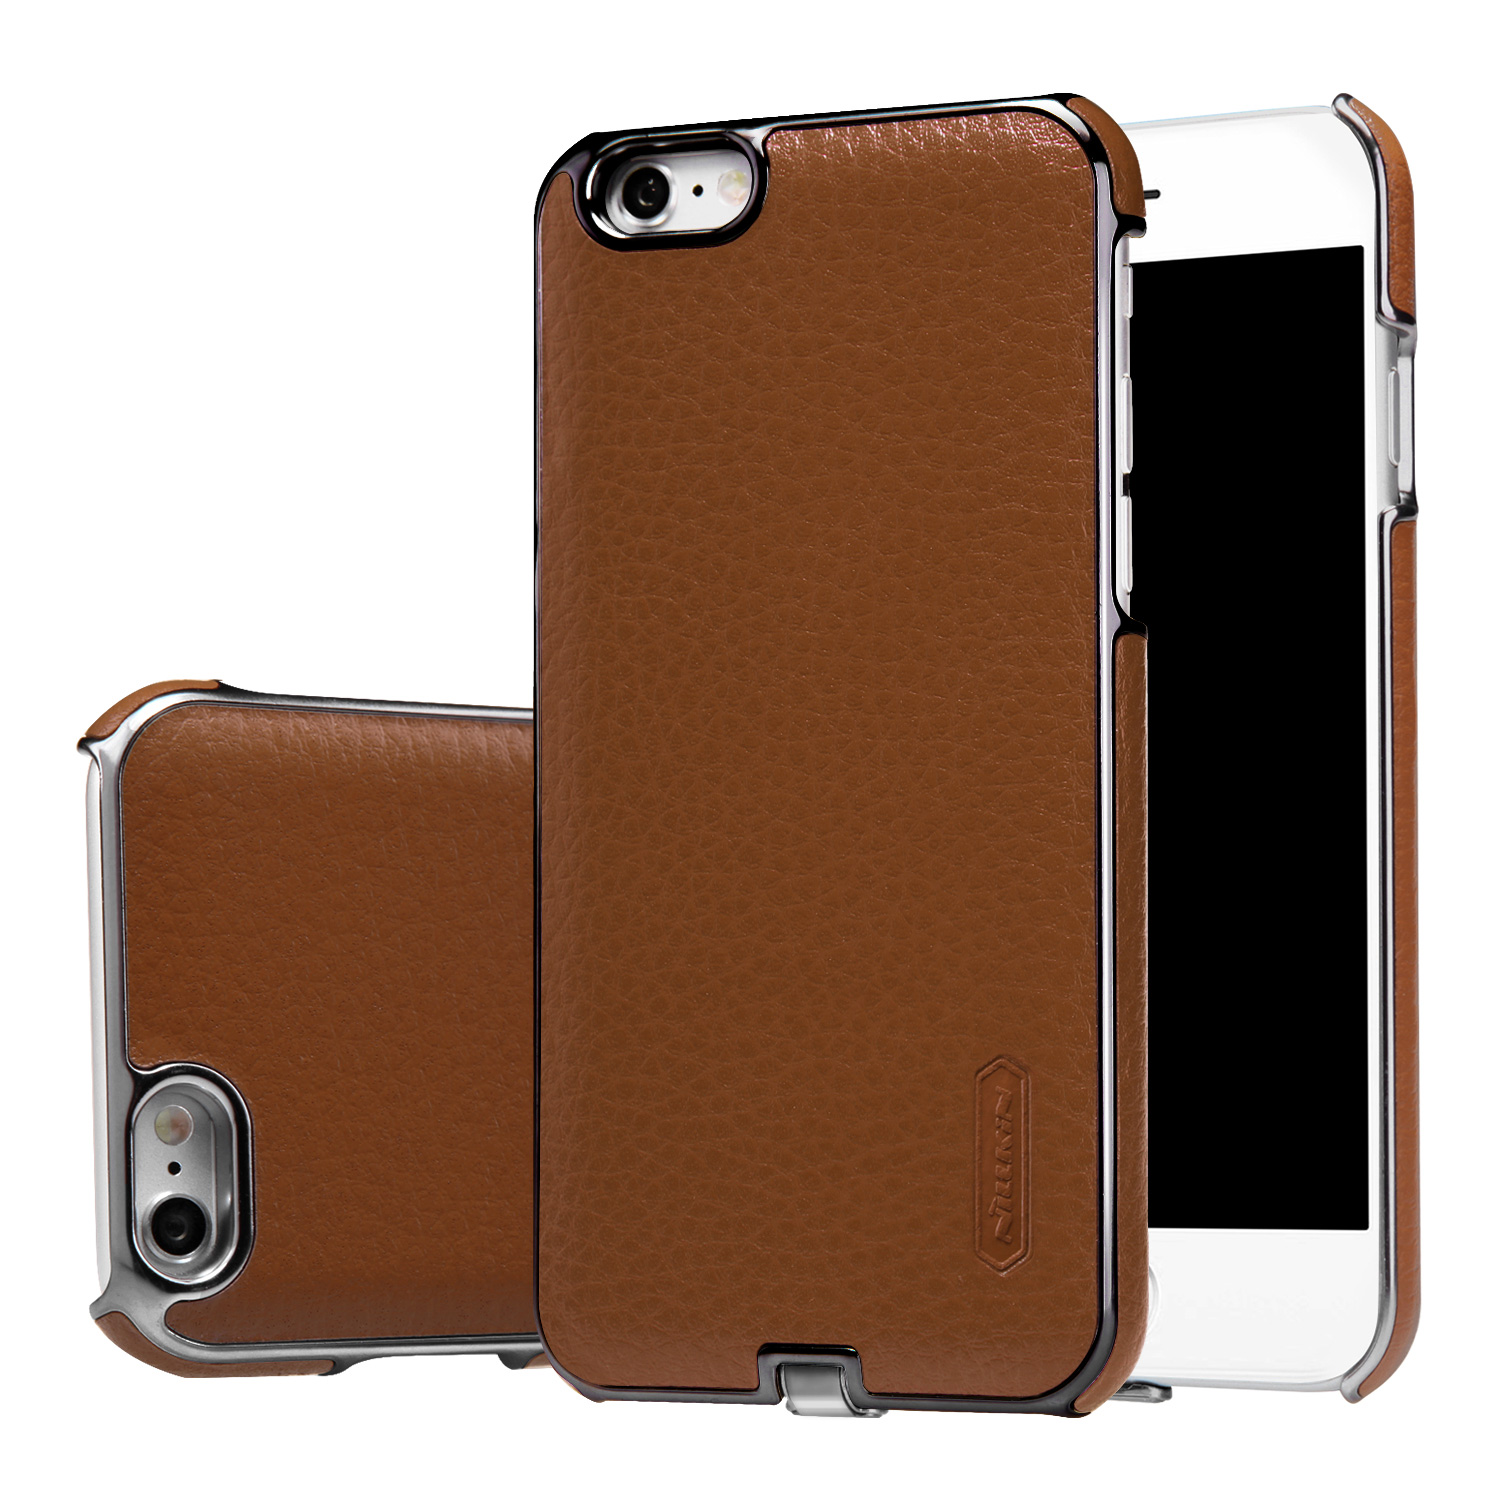 qi wireless charging luxury leather cover receiver case for iphone 6 and 6s ebay. Black Bedroom Furniture Sets. Home Design Ideas